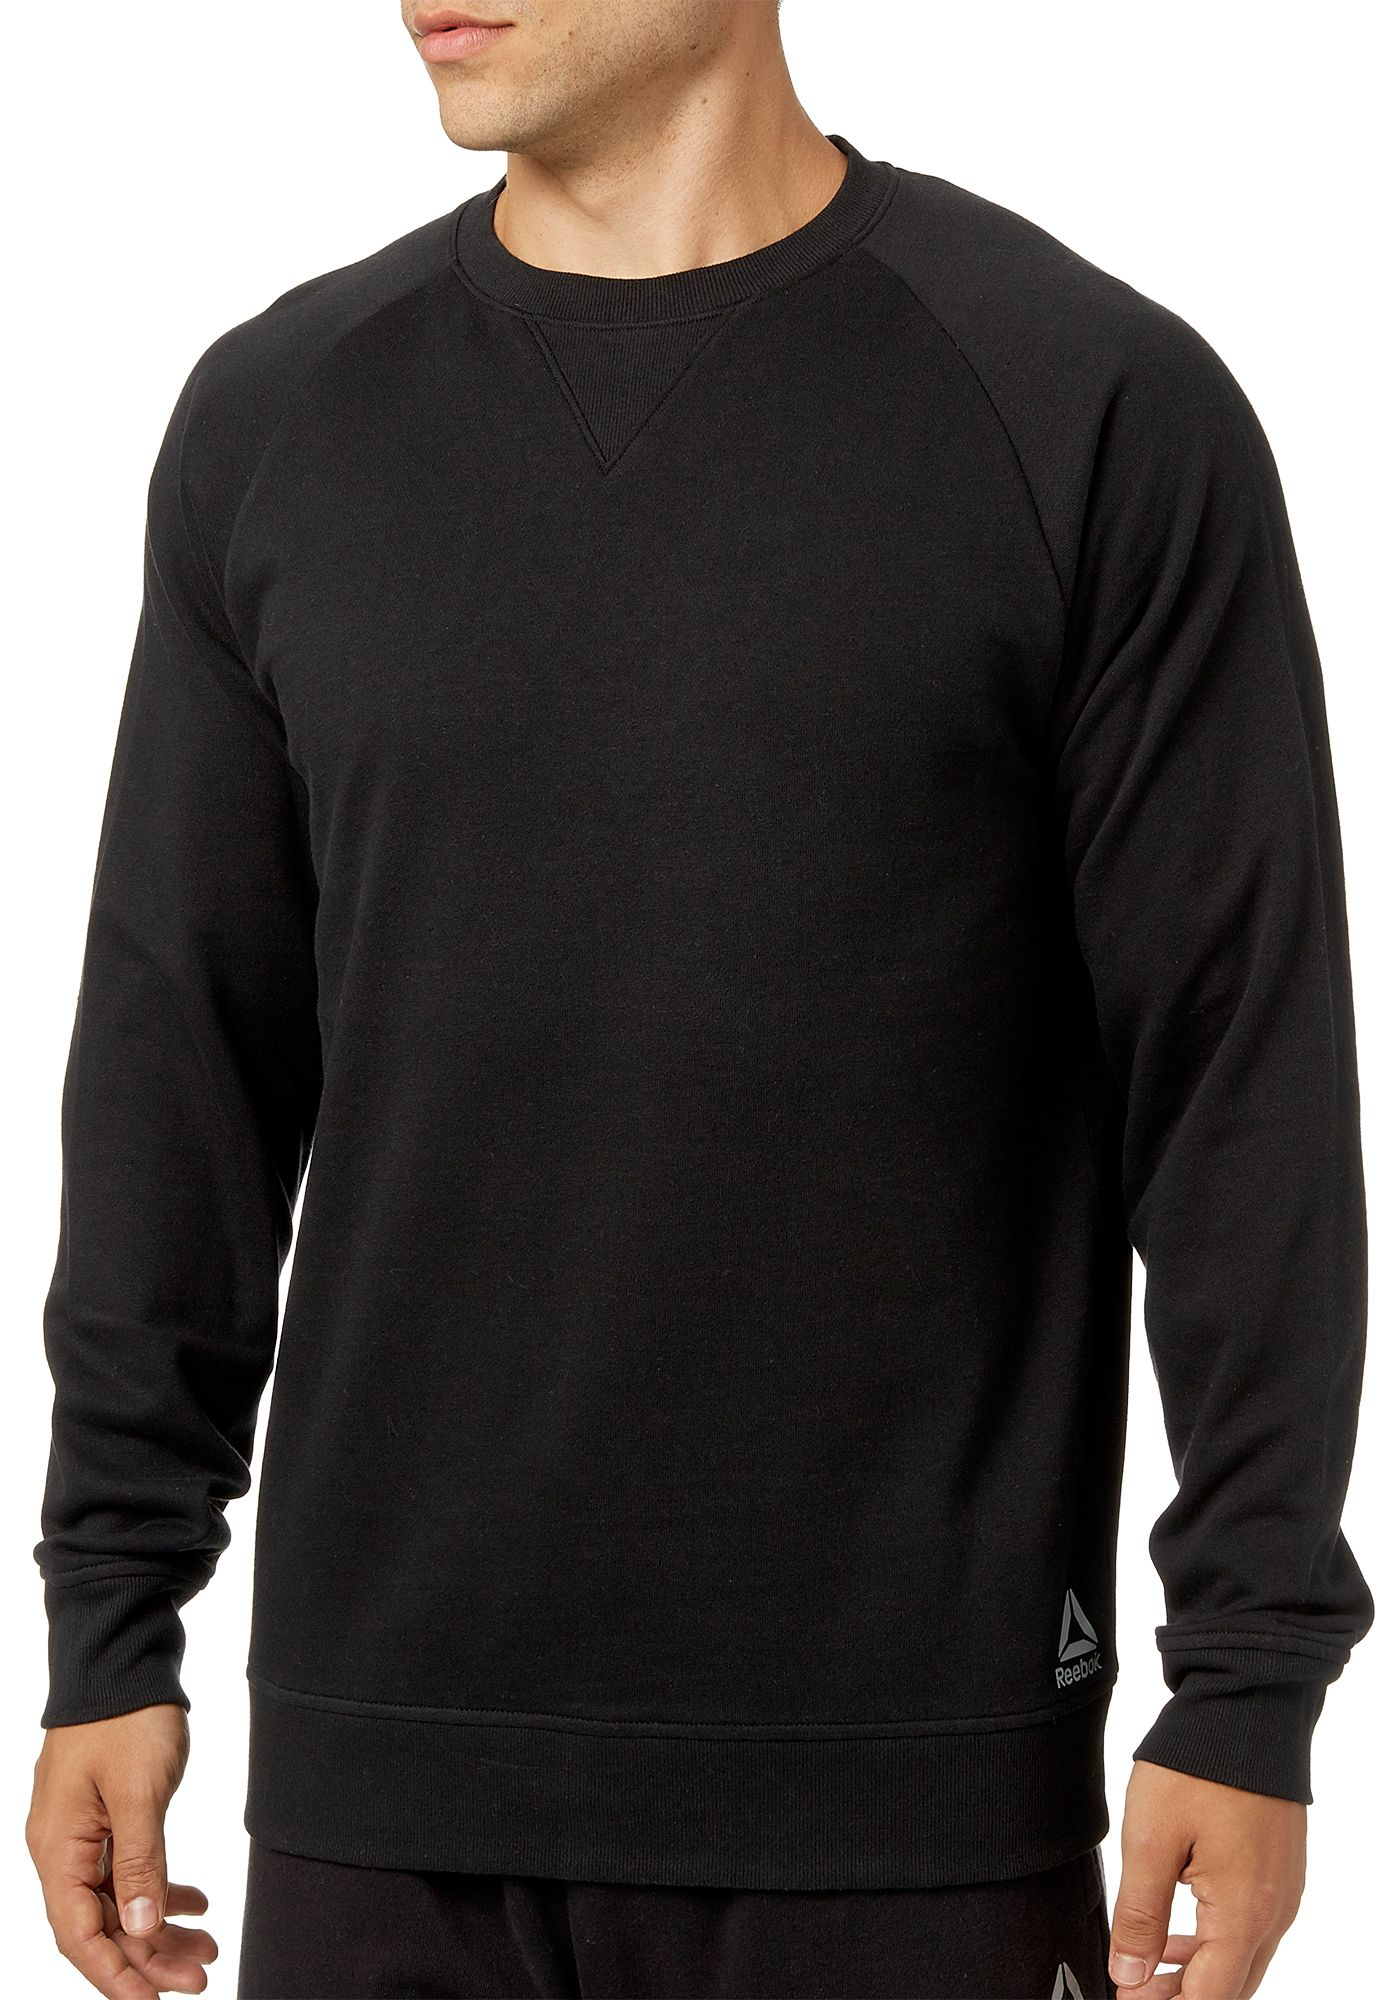 Reebok Men's Cotton Fleece Crewneck Sweatshirt